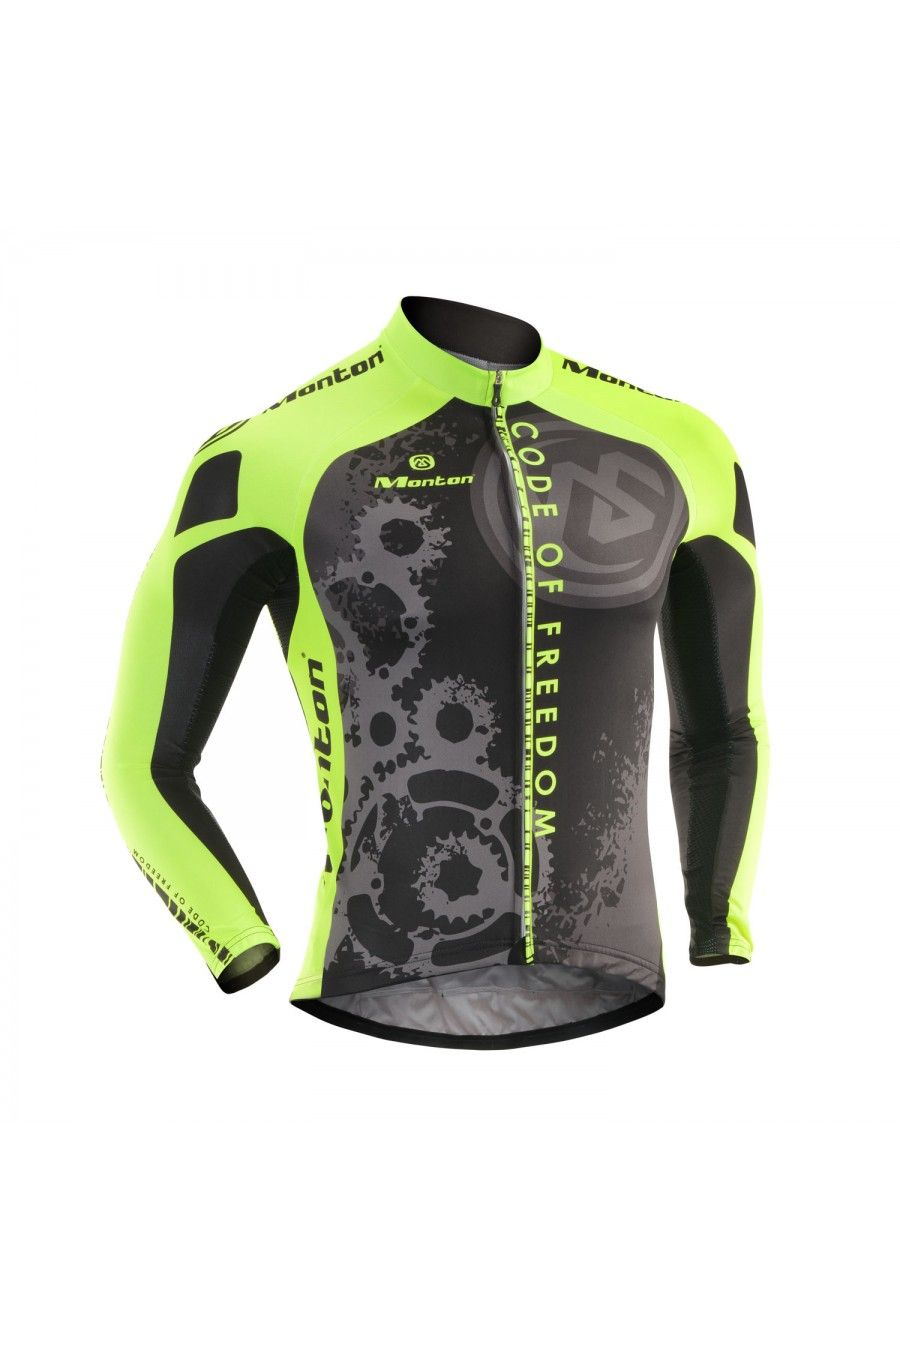 292abcee6 summer long sleeve cycling jersey